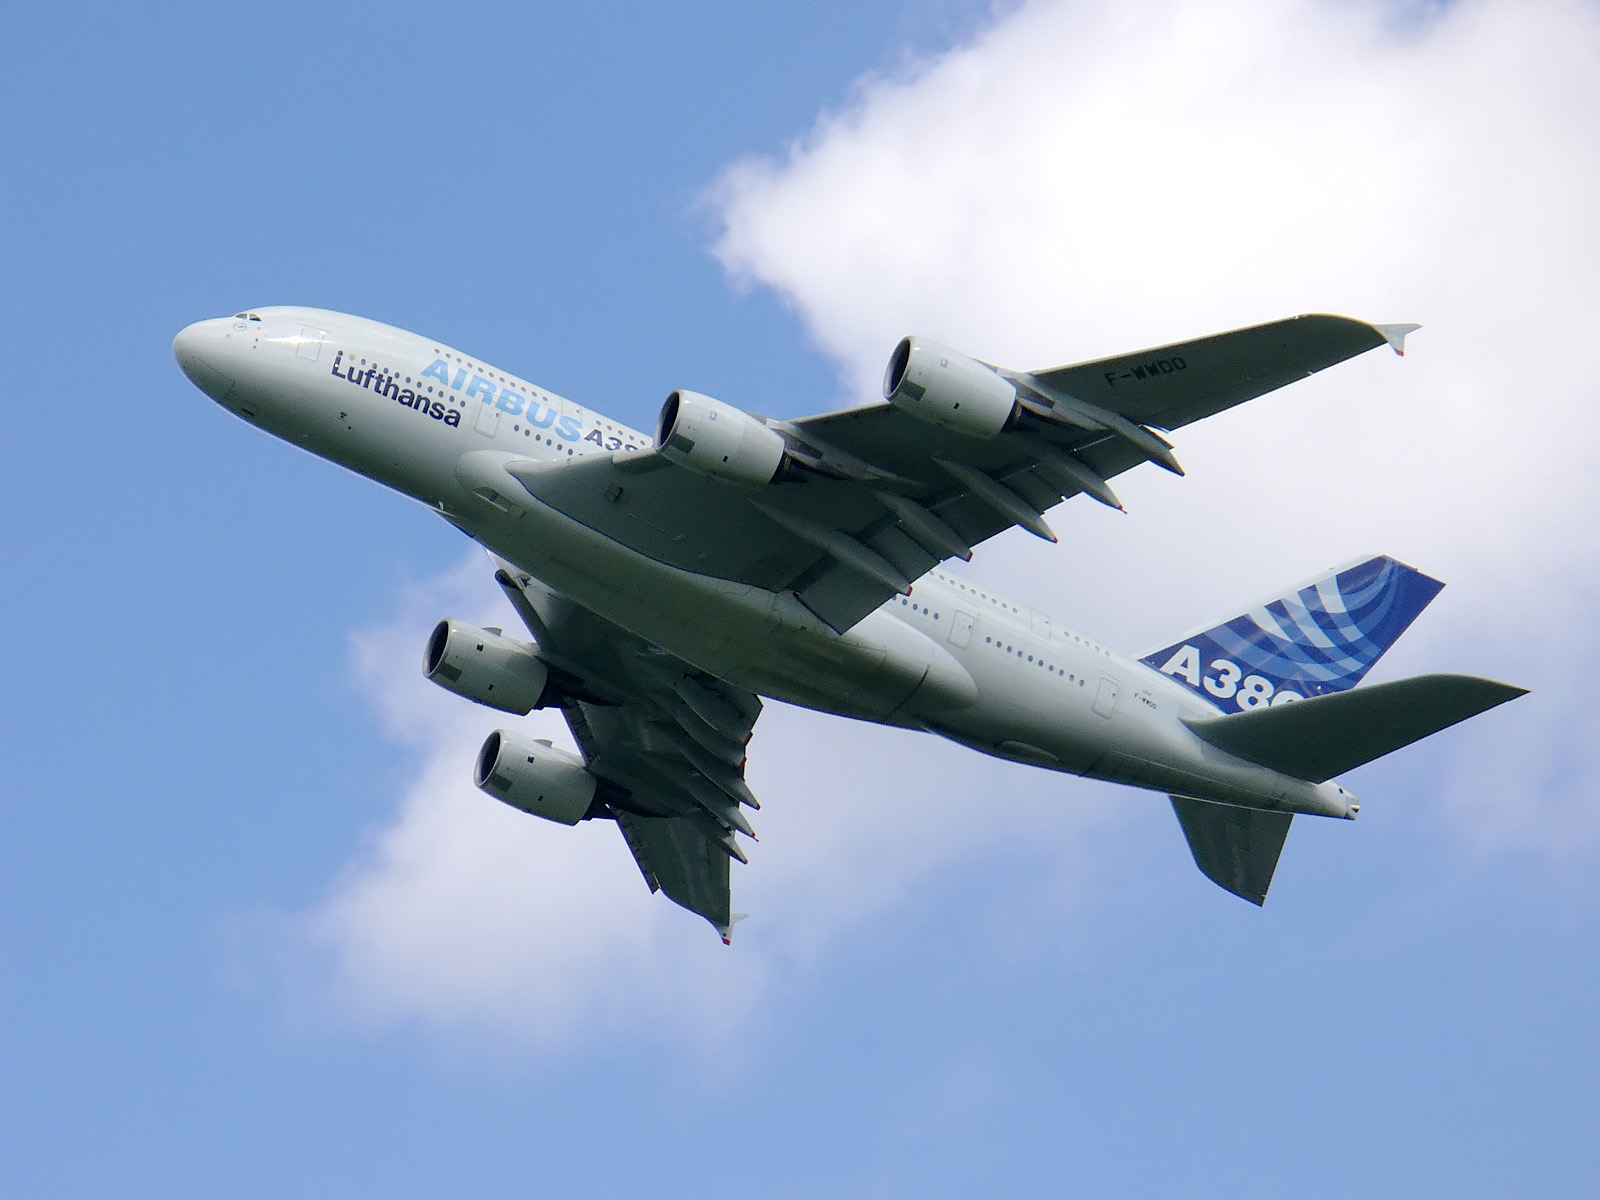 Un Airbus A380 à ILA 2006 (Photo Łukasz Golowanow (CC BY-SA 2.5))